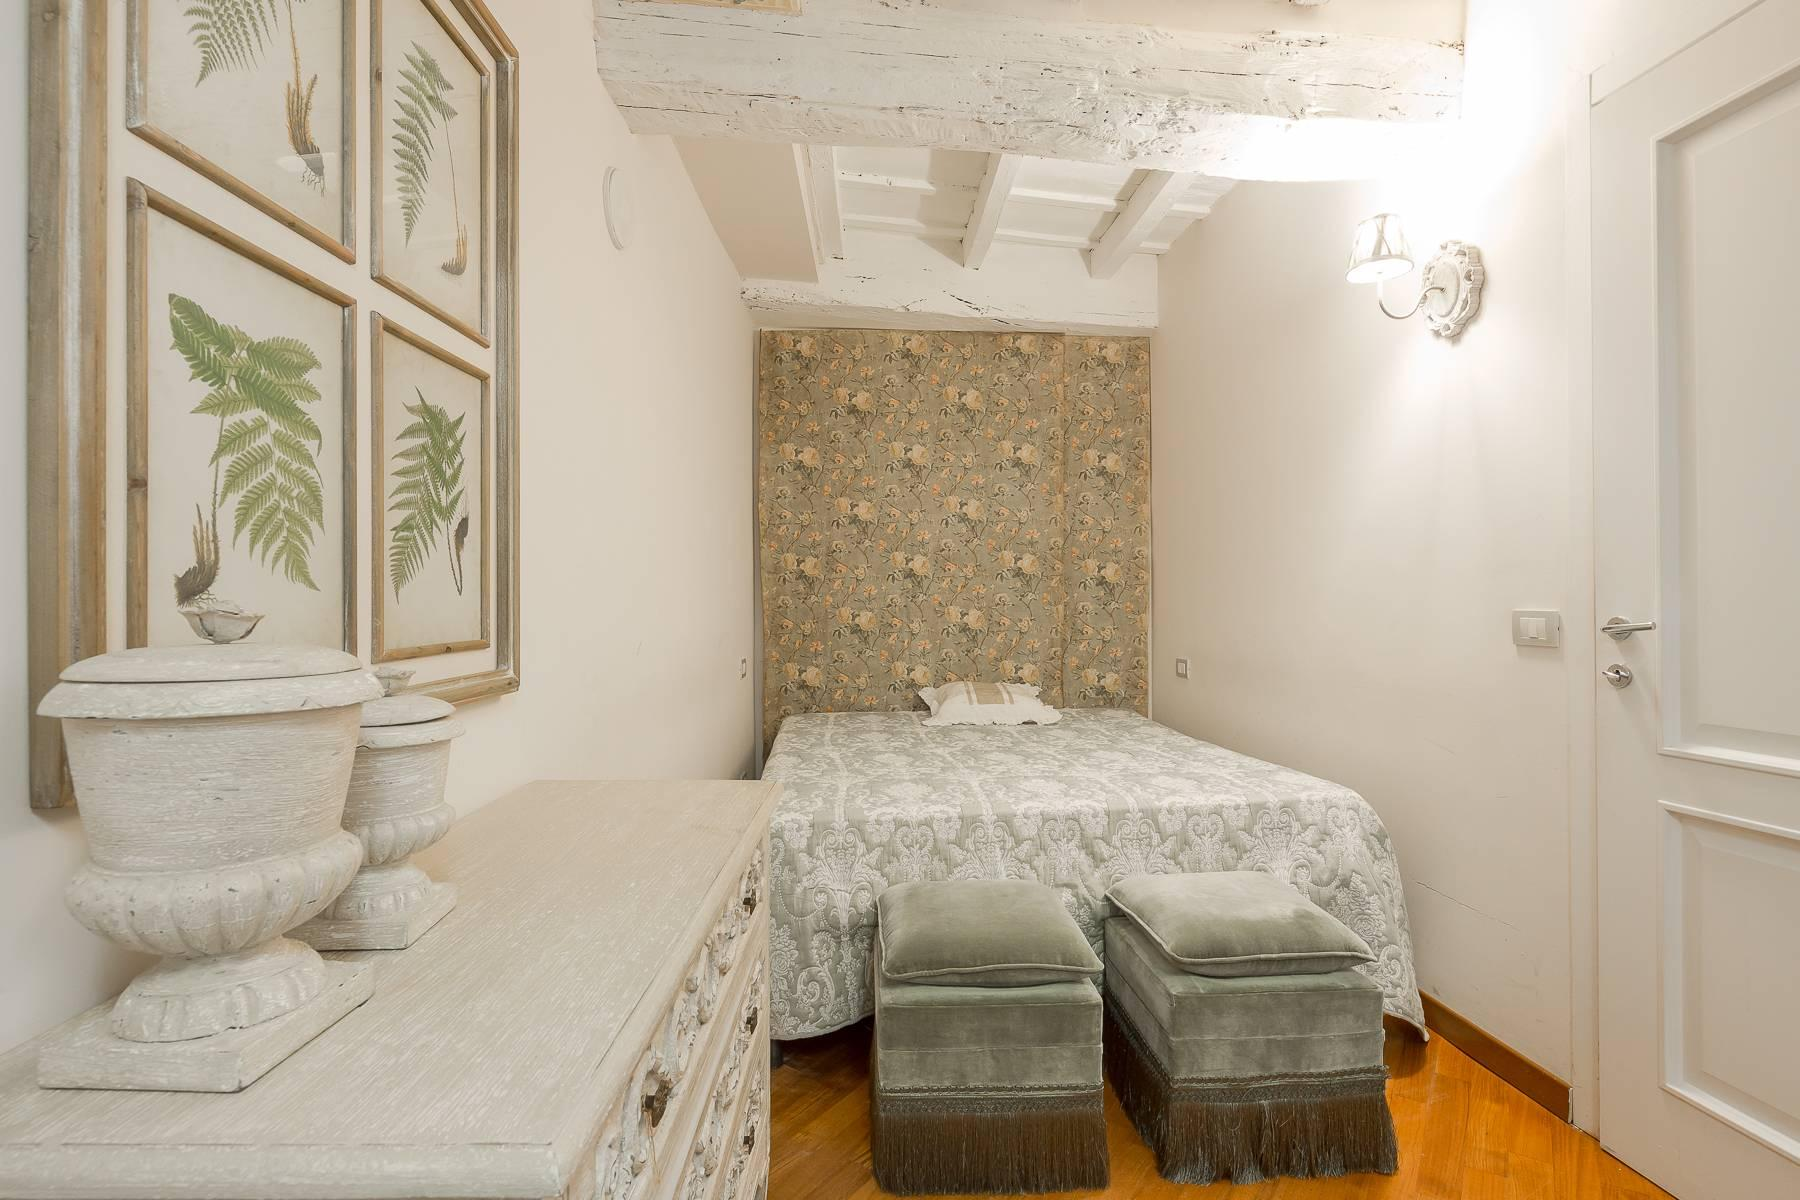 Fully furnished three-room apartment in the heart of Brera - 18